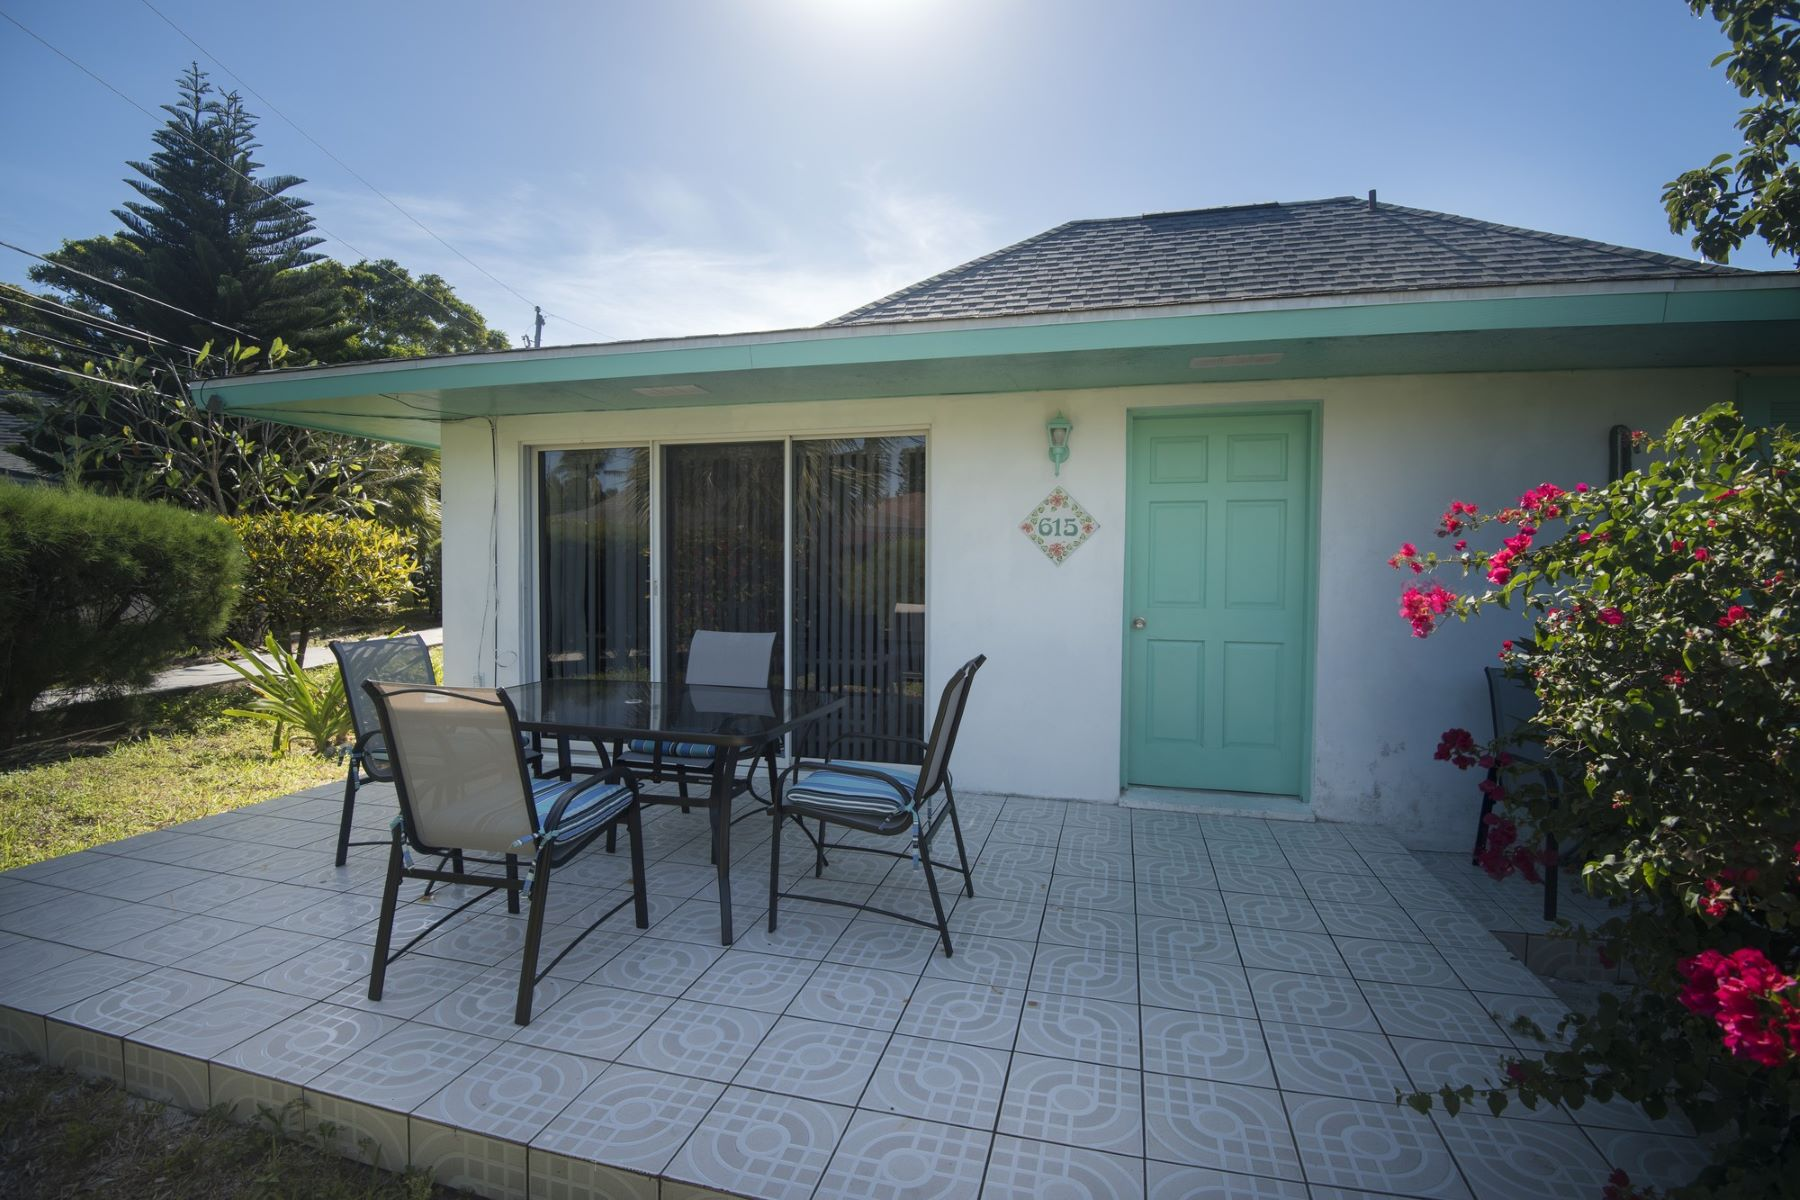 Condominium for Sale at Beach Villa #615 Treasure Cay, Abaco Bahamas